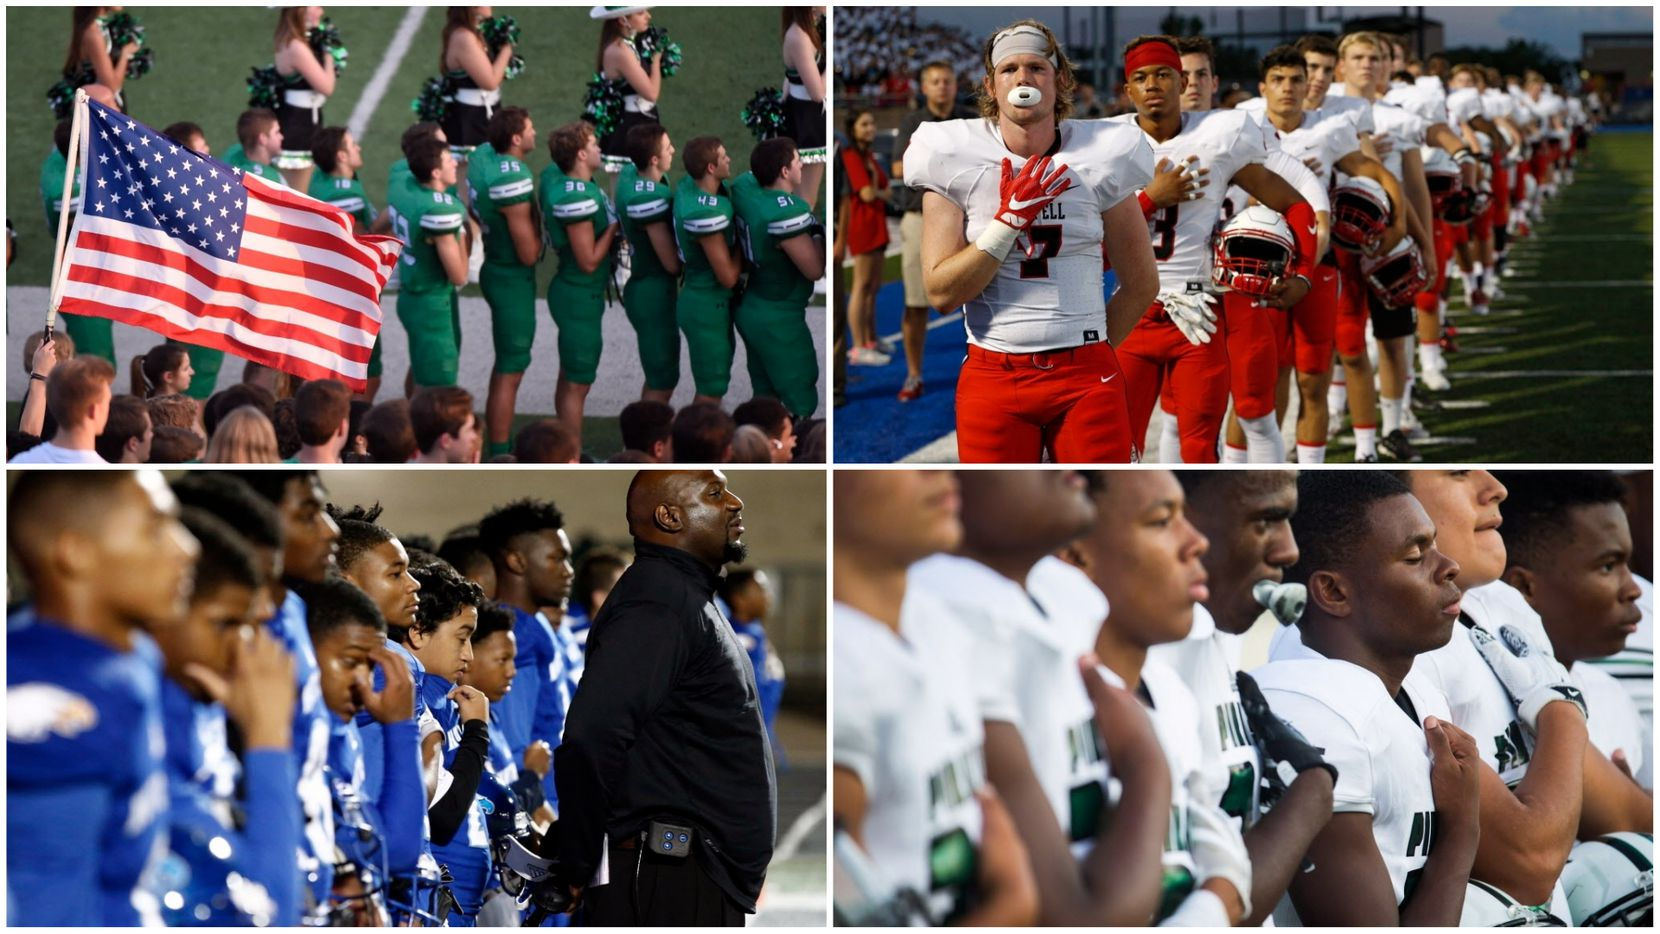 In these file photos, players and coaches from Dallas-area high schools stand during the national anthem. On Sunday Sept. 24, dozens of NFL players knelt or locked arms in unity during the national anthem to protest racial injustice.